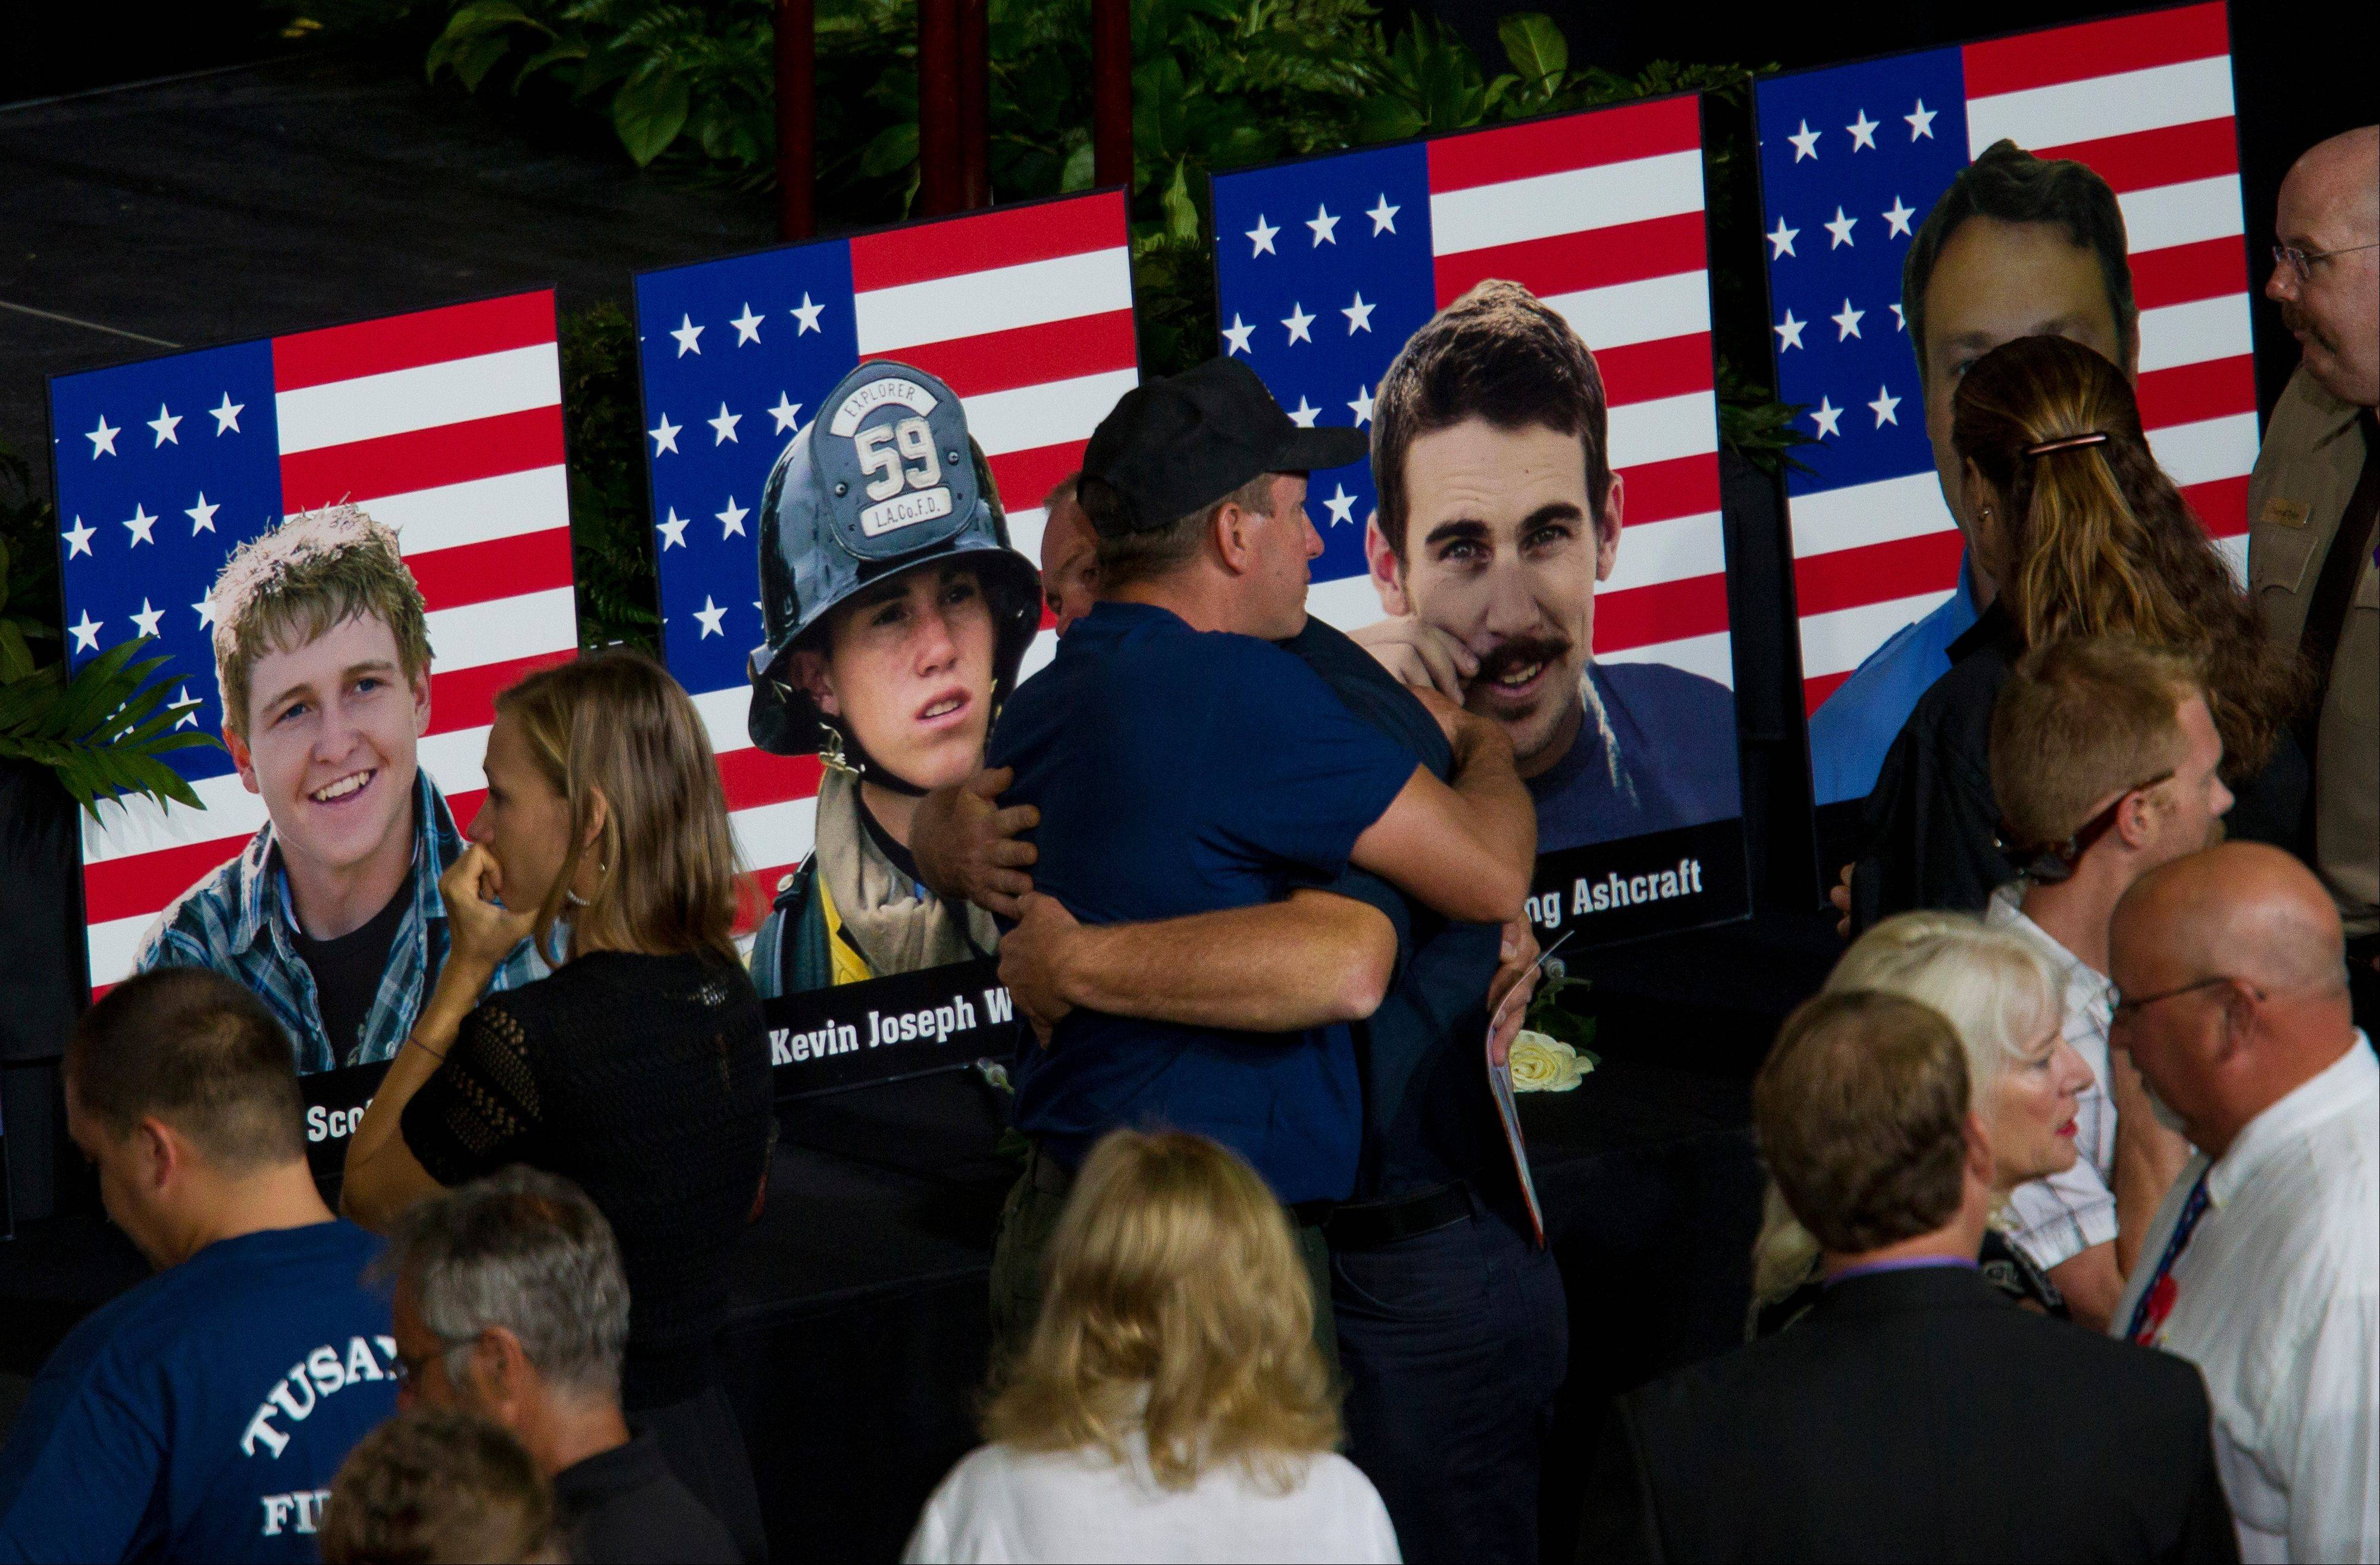 Photos of some of the 19 fallen firefighters line the front of the stage before a memorial service for the 19 fallen firefighters at Tim's Toyota Center in Prescott Valley, Ariz. on Tuesday, July 9, 2013.